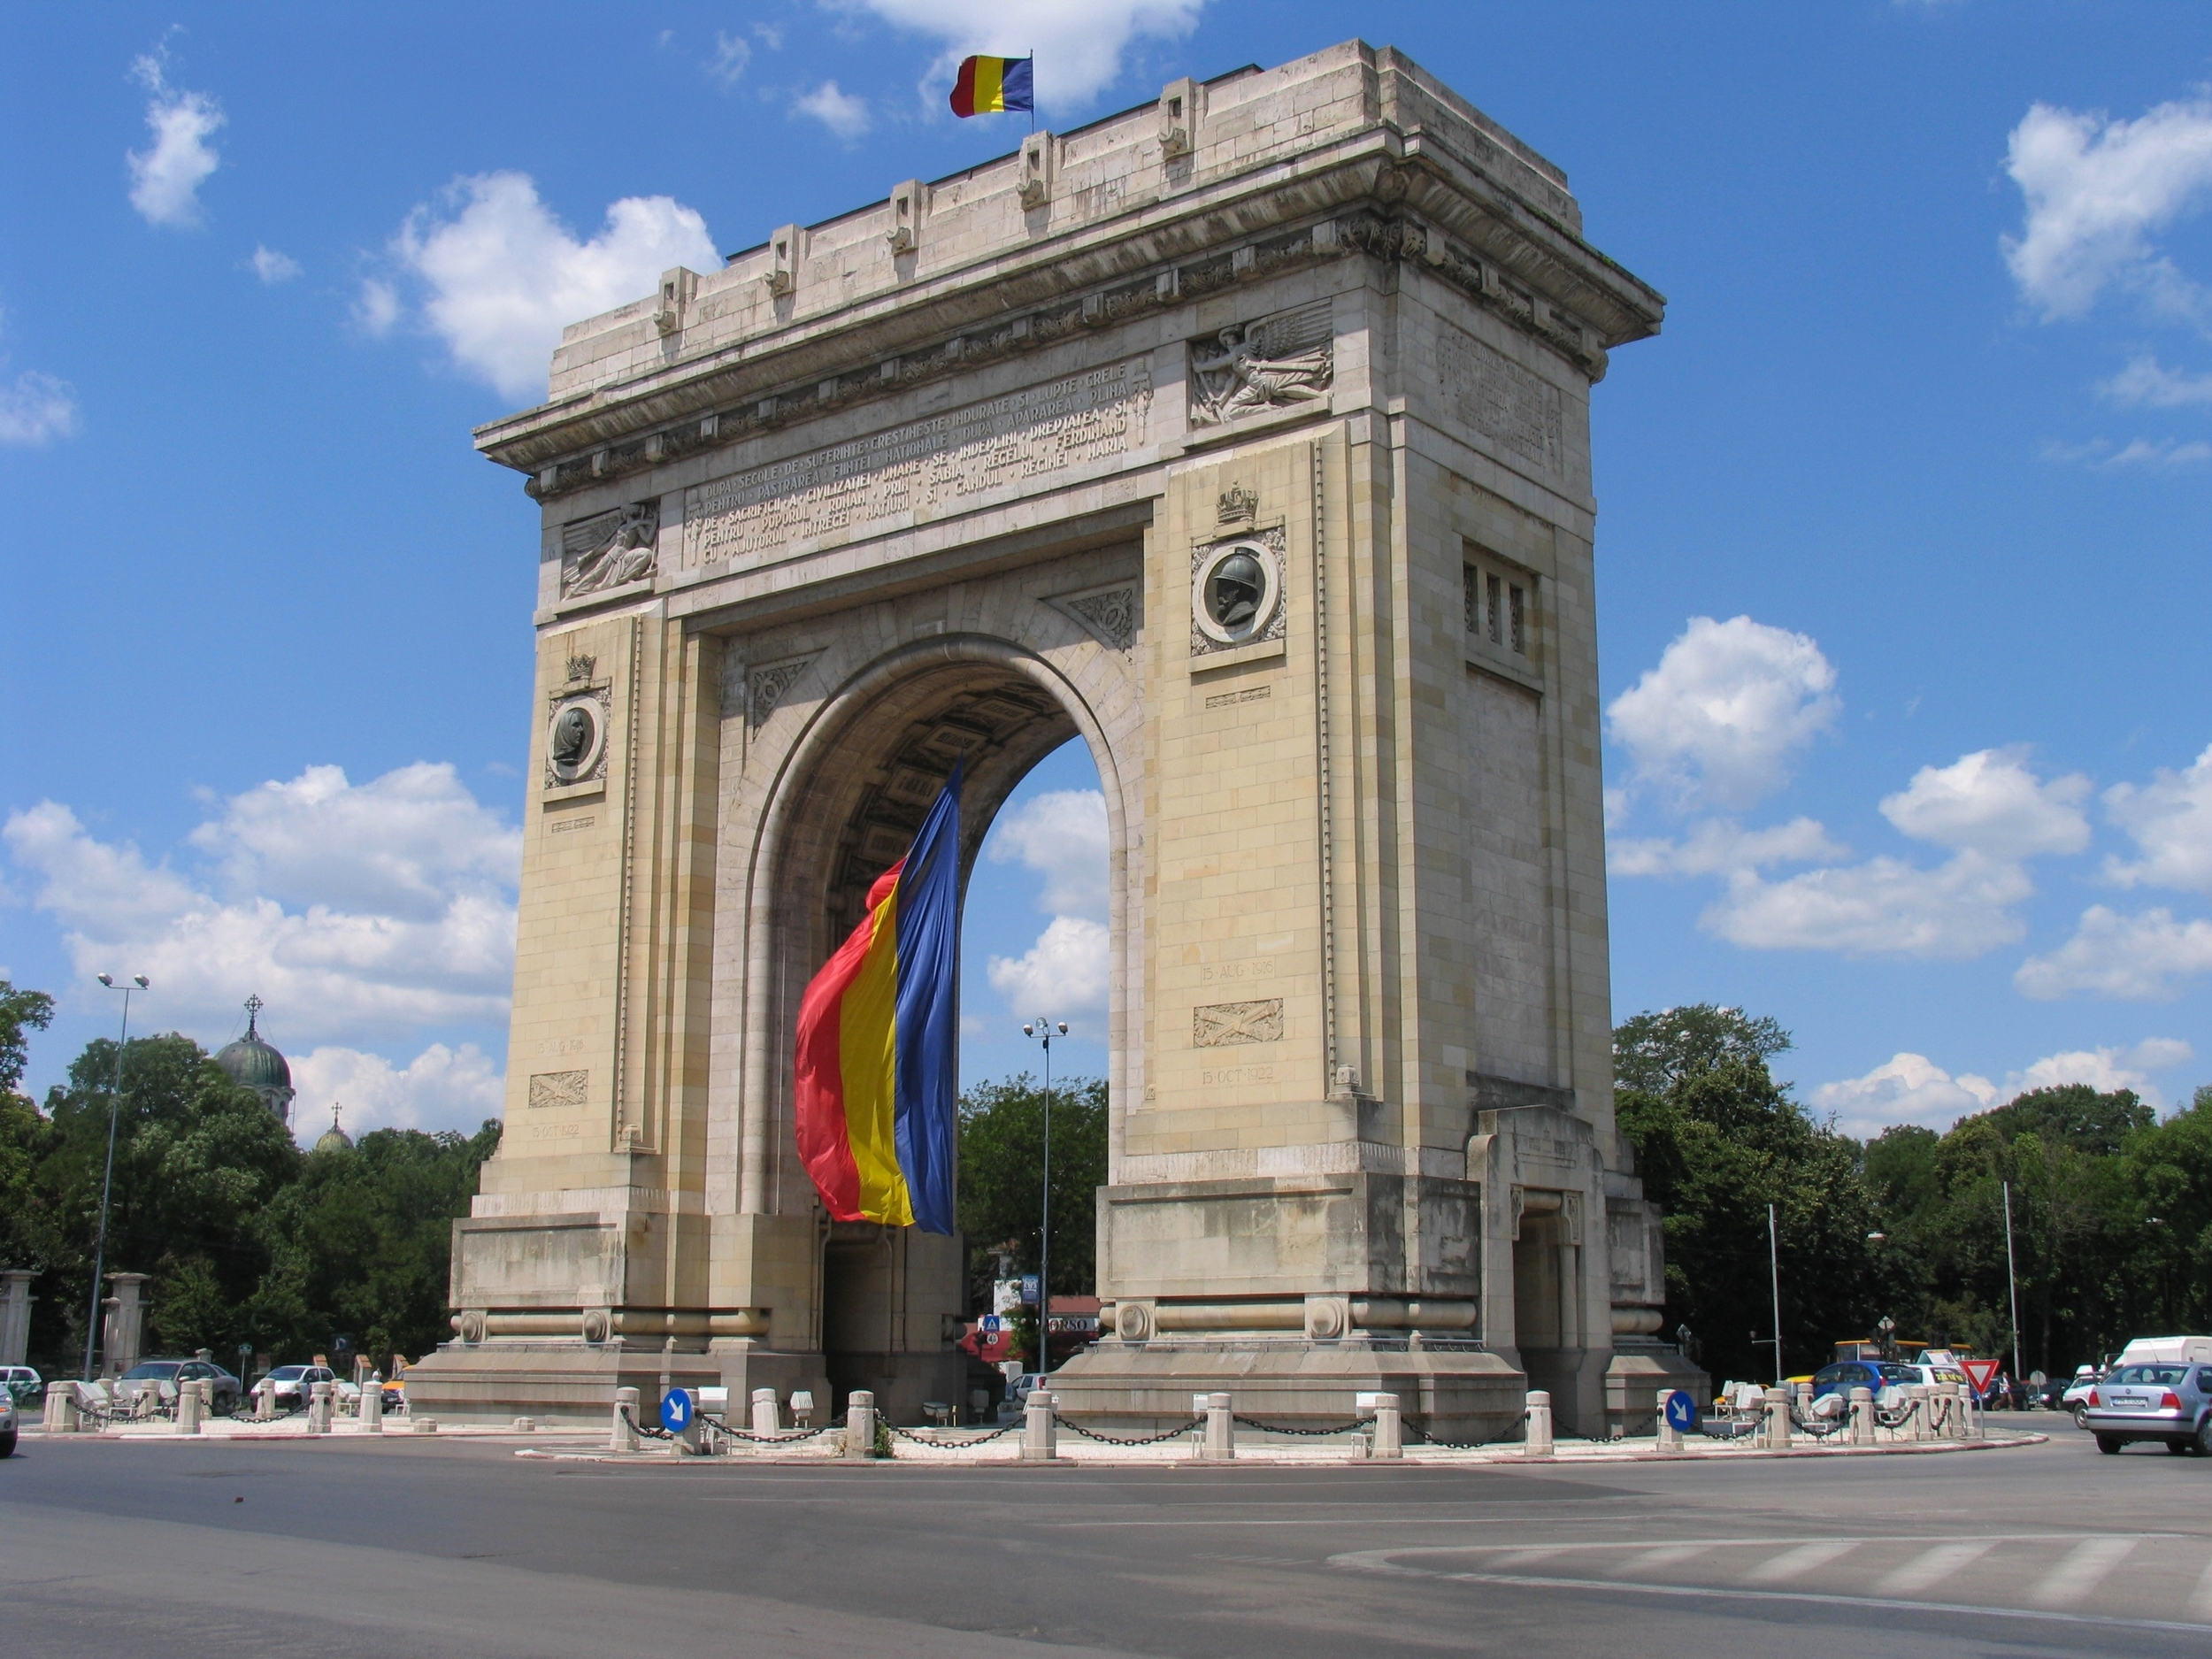 The Triumph Arch in Bucharest, Romania. We passed this on our way to the airport from our hotel.